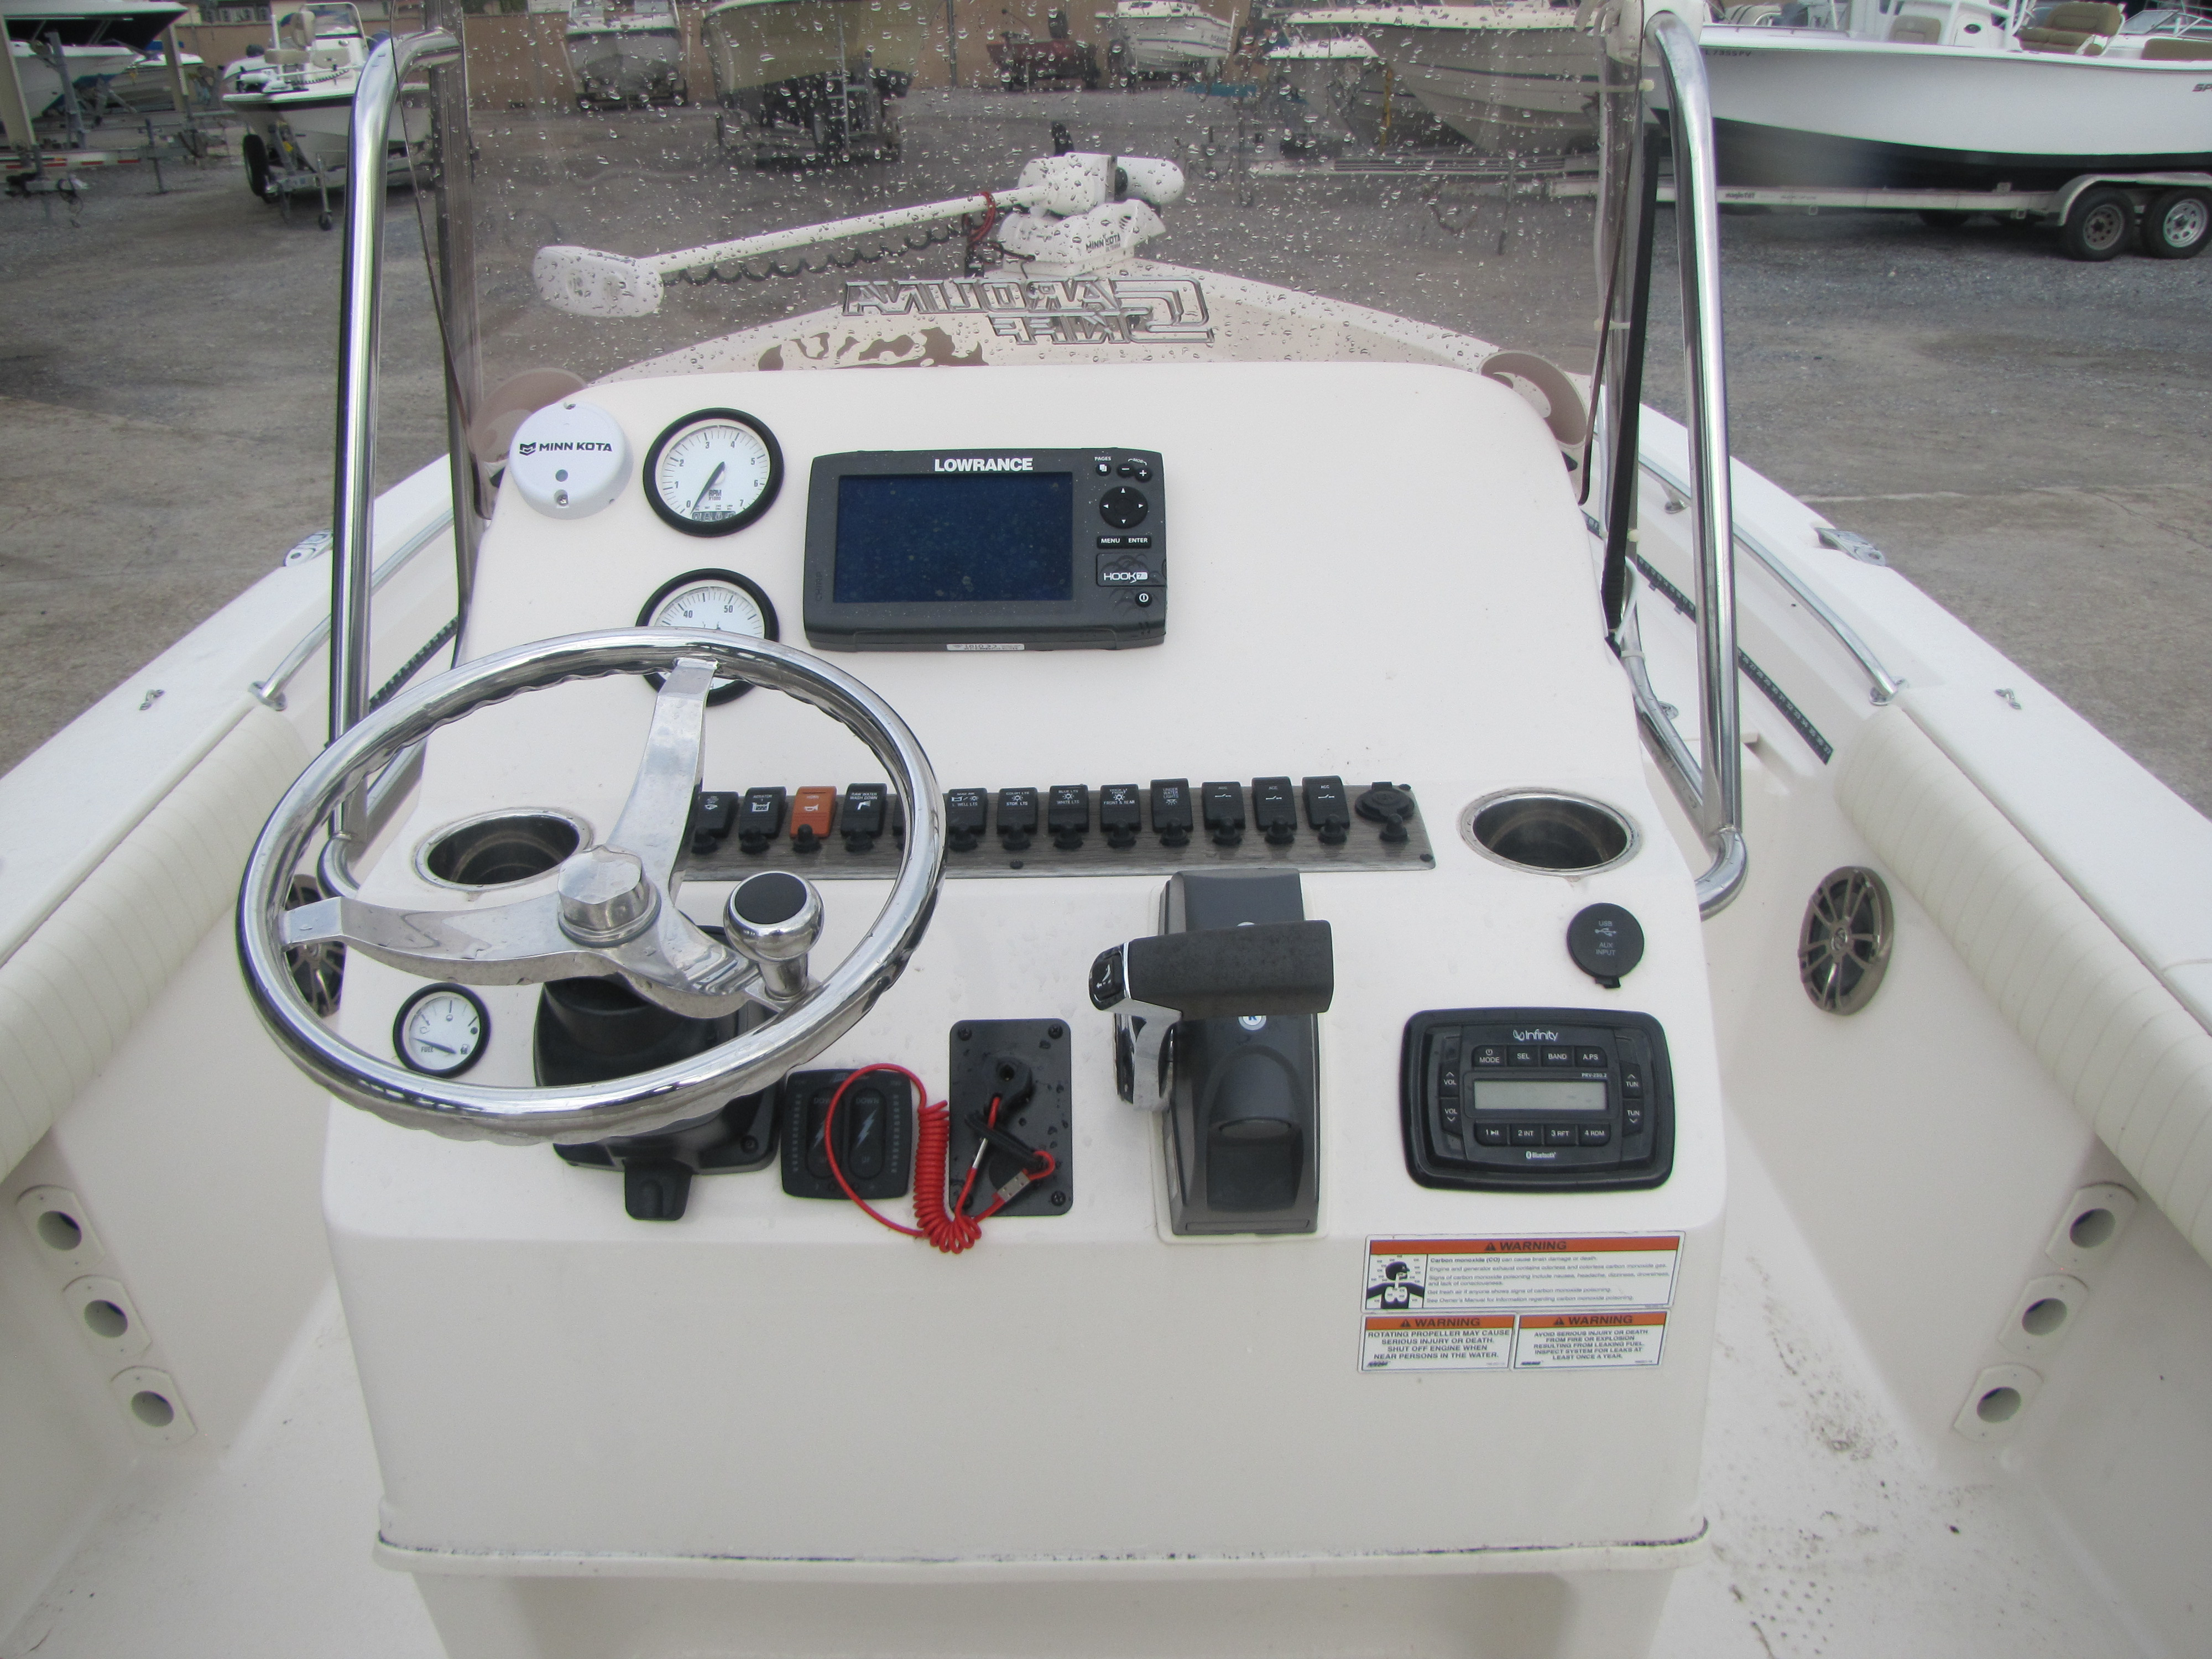 2018 Sea Chaser boat for sale, model of the boat is 23 LX & Image # 12 of 19